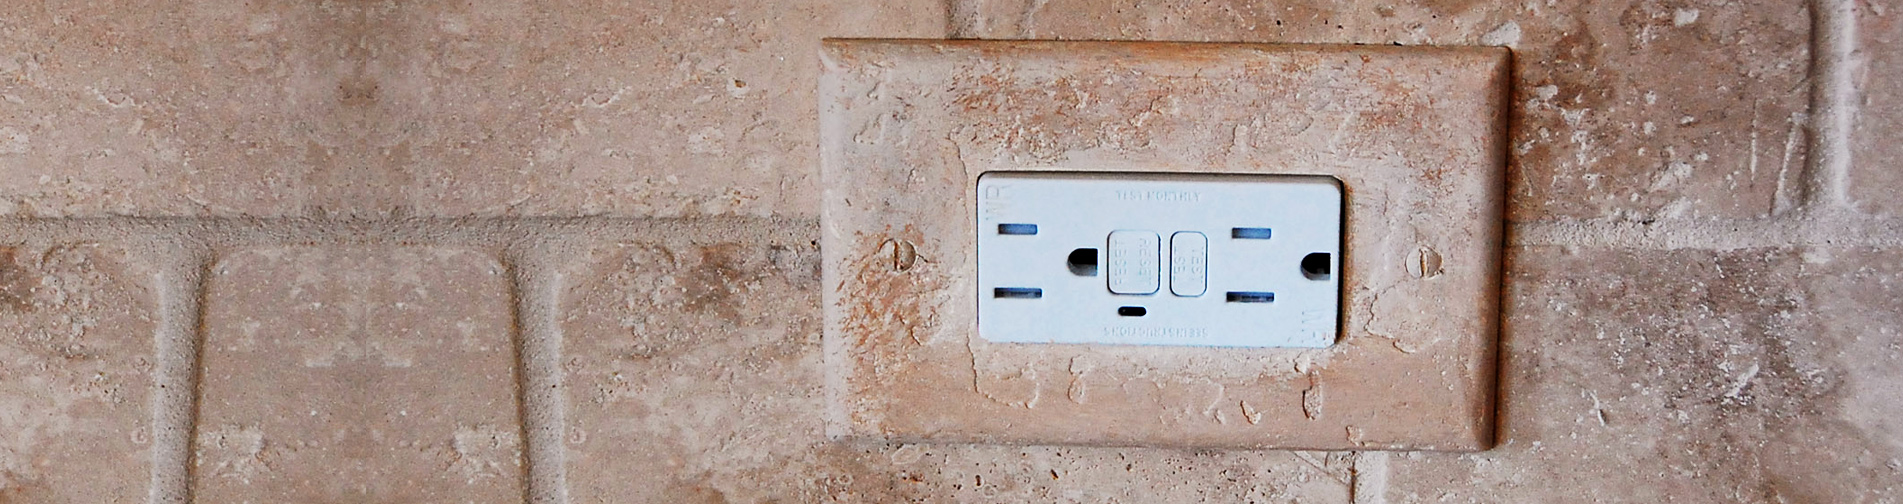 Decorative Wall Outlet Plates : Decorative wall switch plates outlet covers paintable